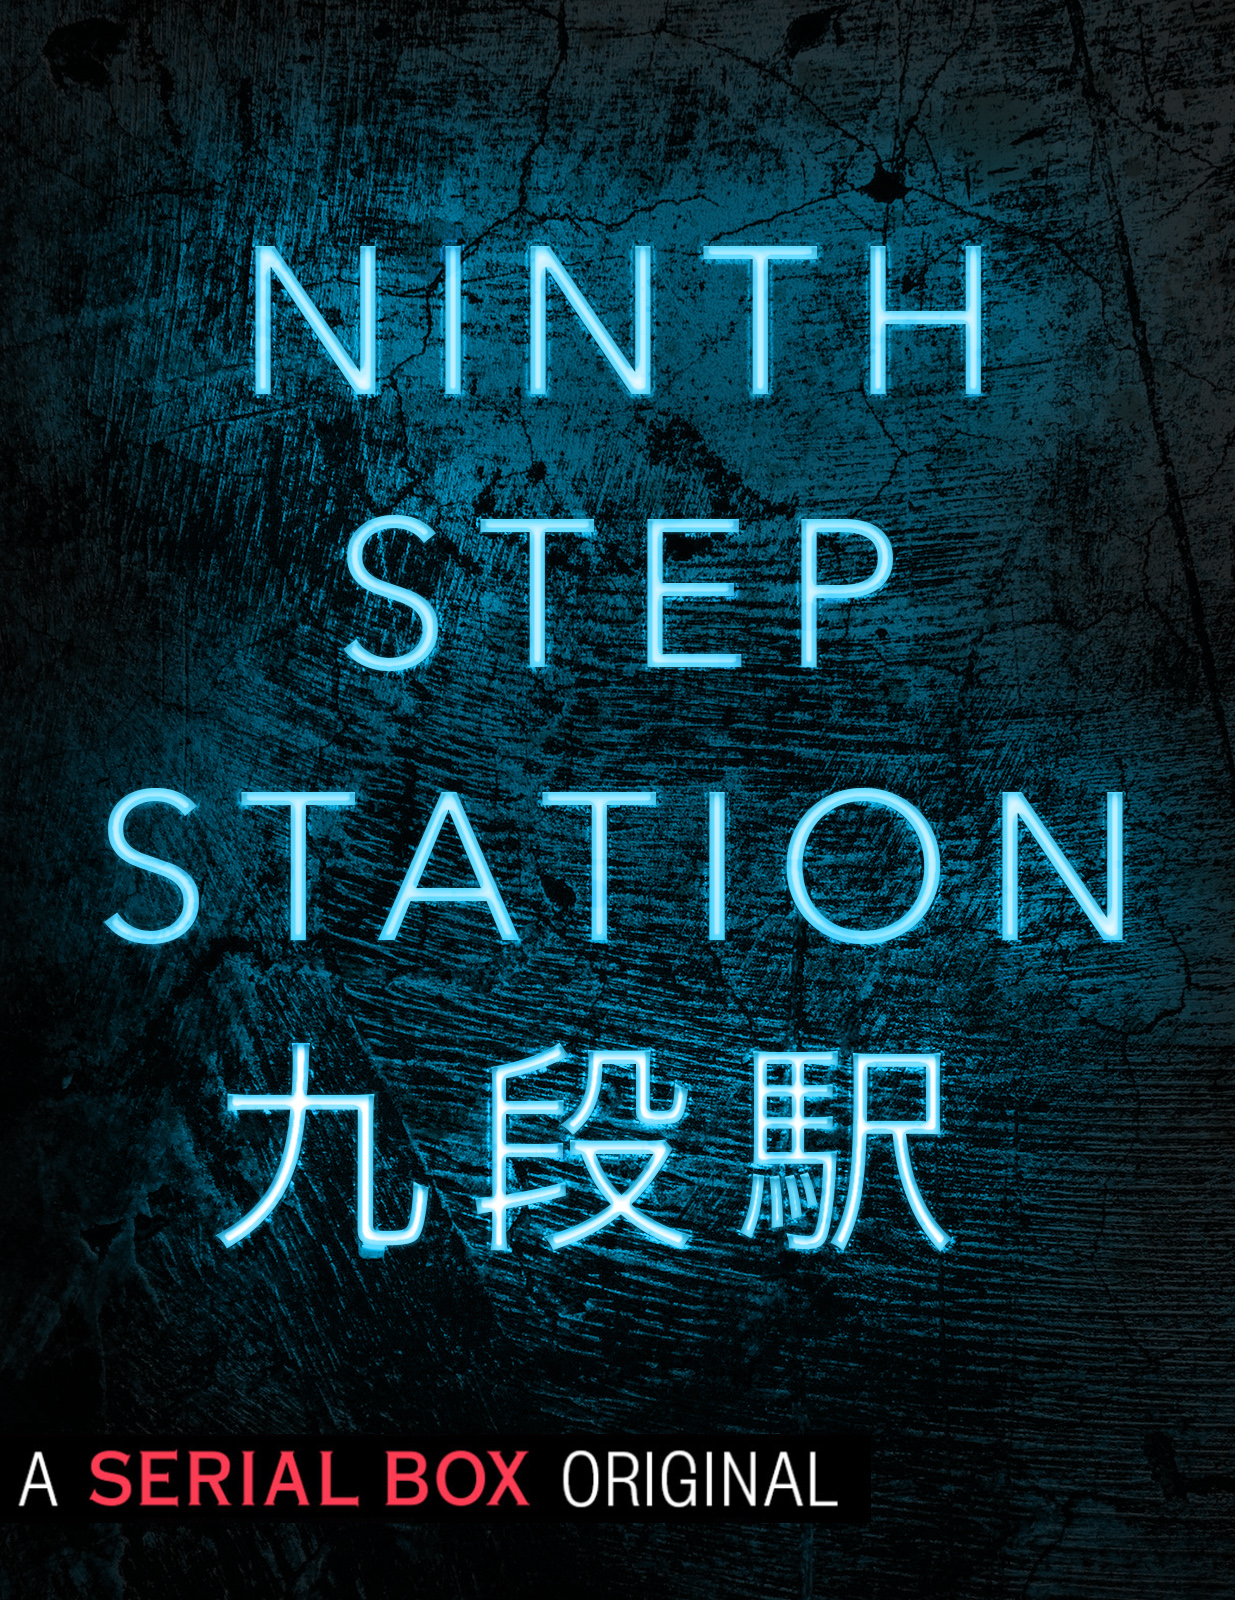 Ninth Step Station cover